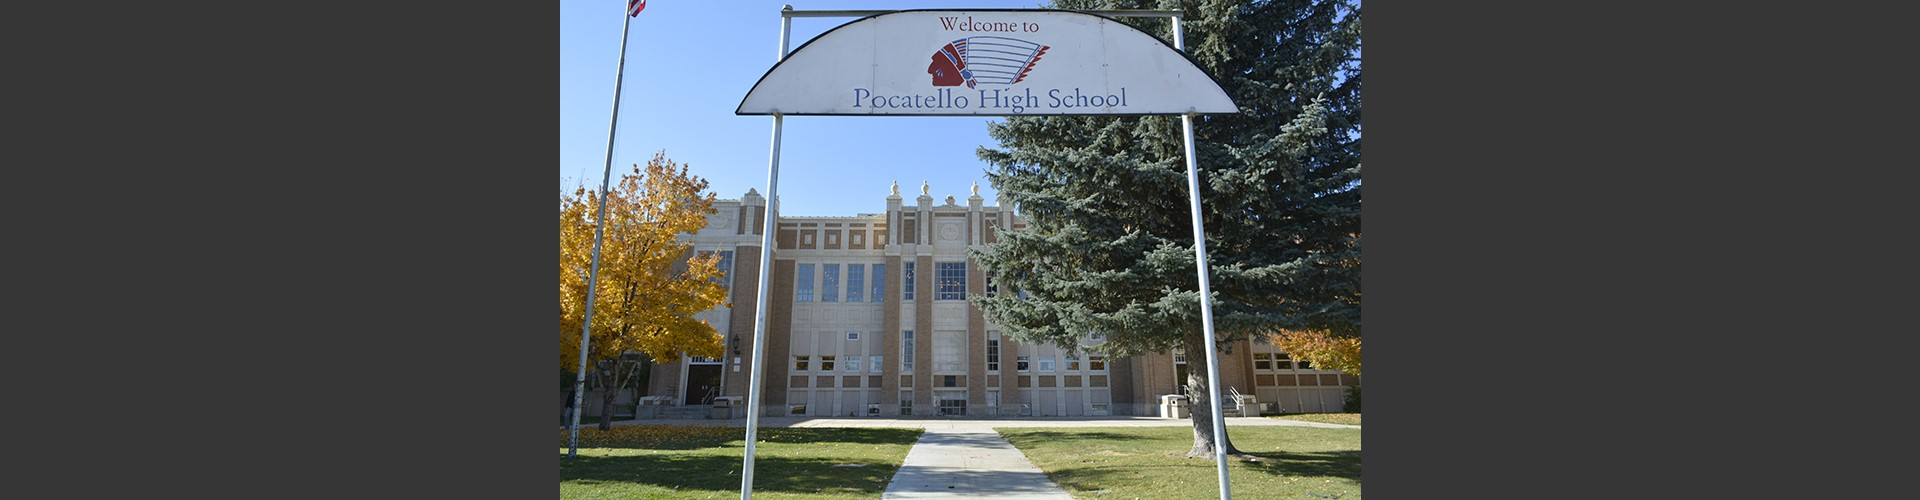 welcome to pocatello high school sign in front of school